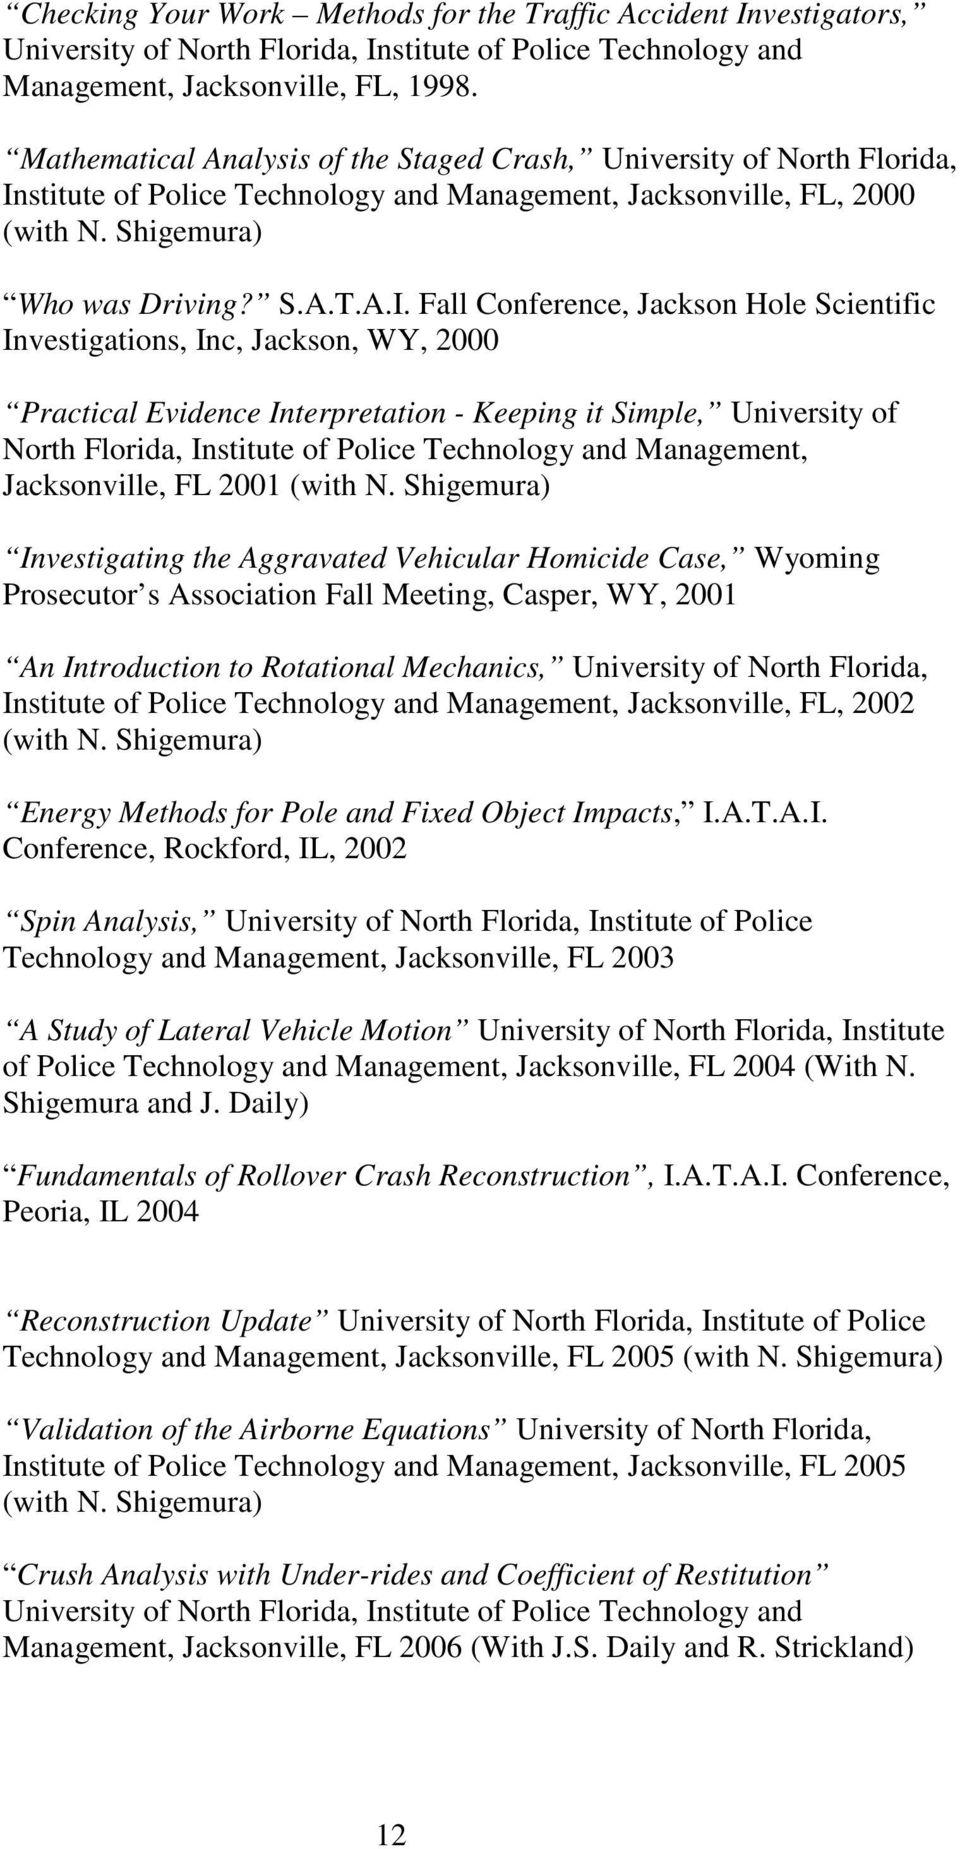 stitute of Police Technology and Management, Jacksonville, FL, 2000 (with N. Shigemura) Who was Driving? S.A.T.A.I.